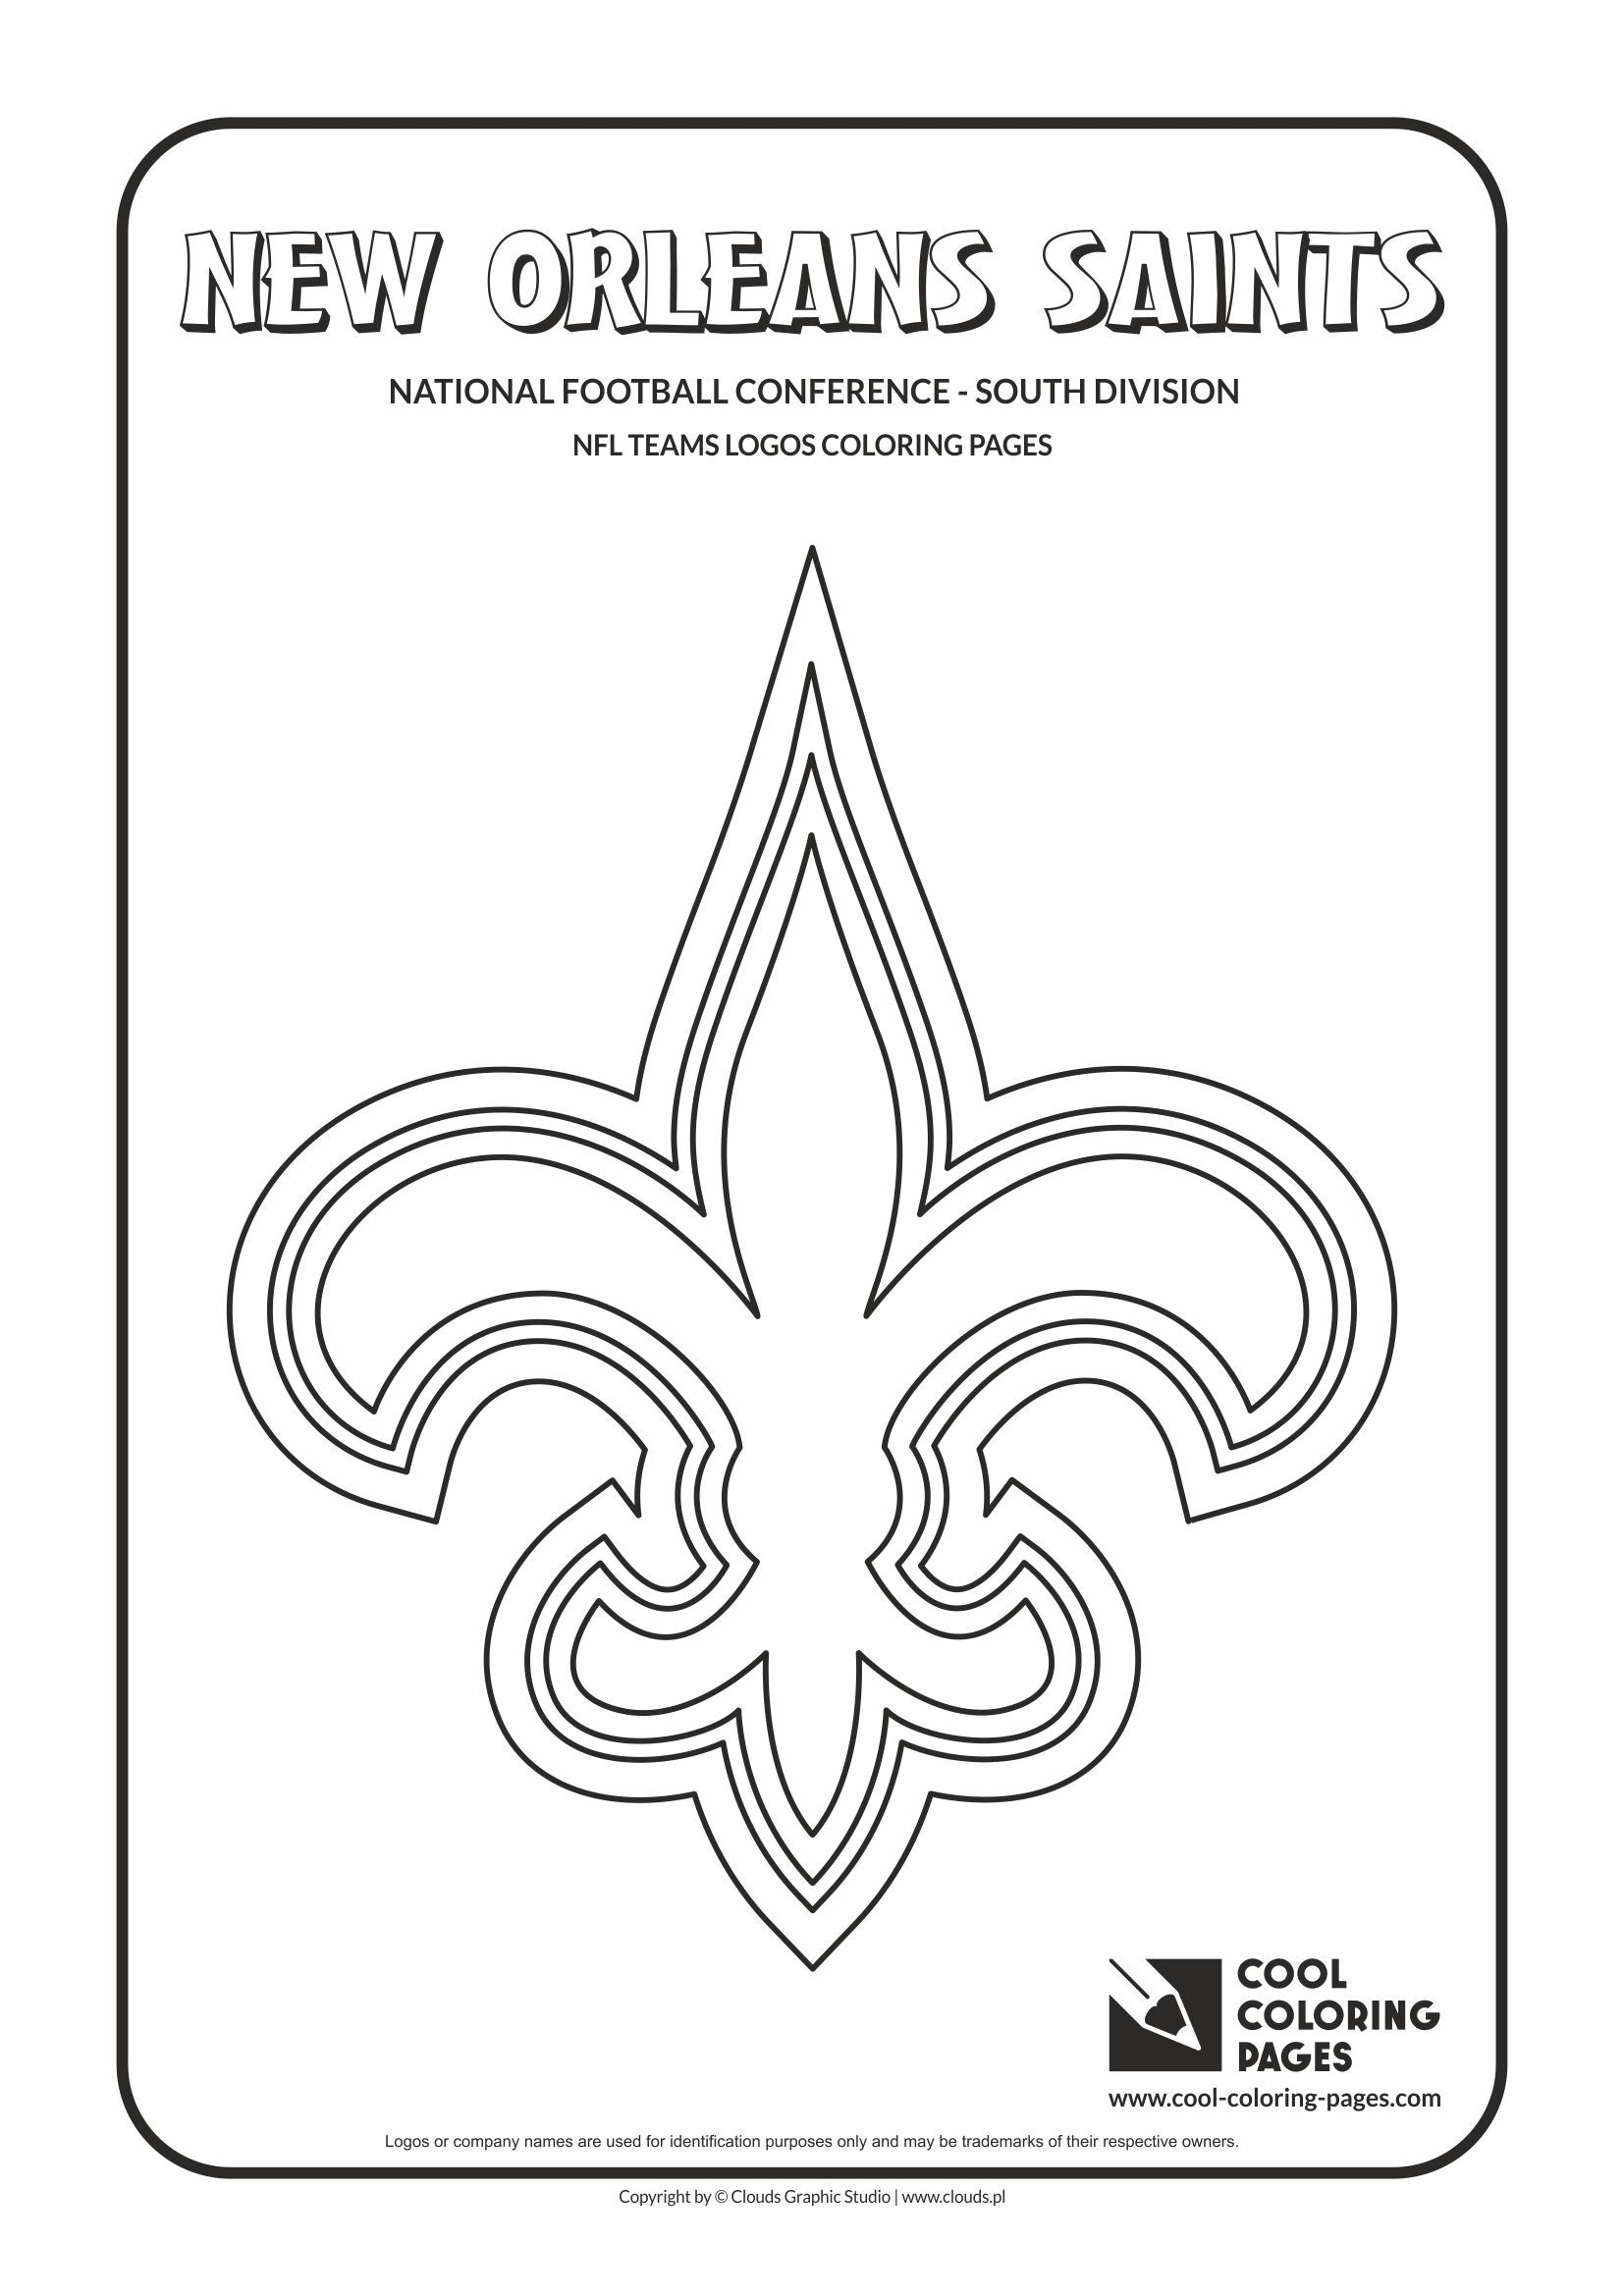 cool coloring pages nfl american football clubs logos national football - Nfl Football Logos Coloring Pages